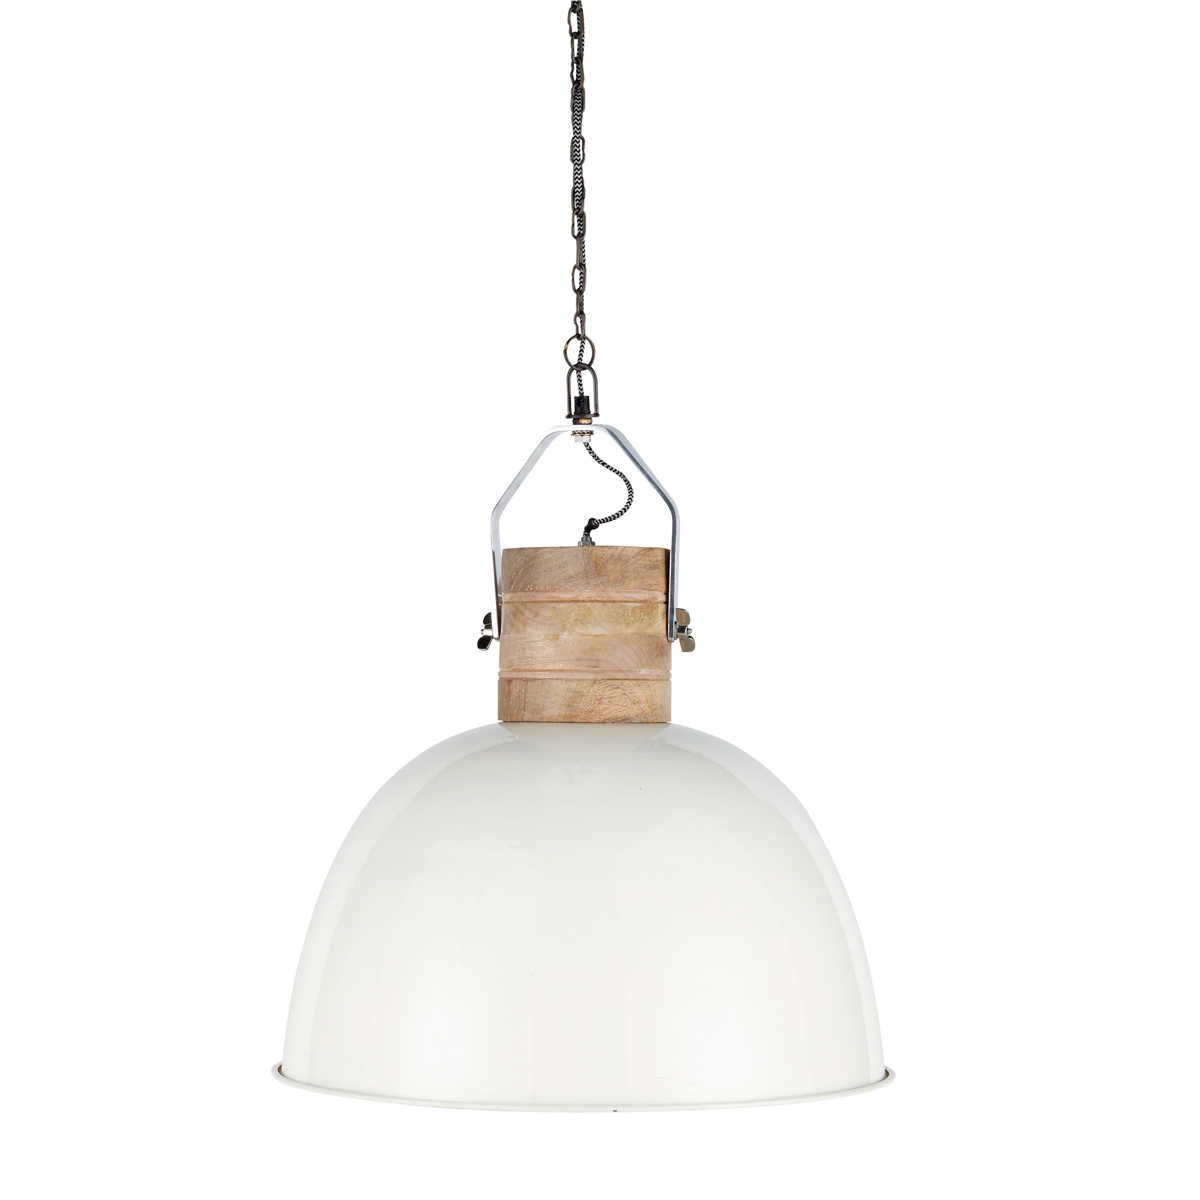 Suspension Blanche Suspension Blanche En Métal D 50 Cm Décor Fw 2016 Pinterest